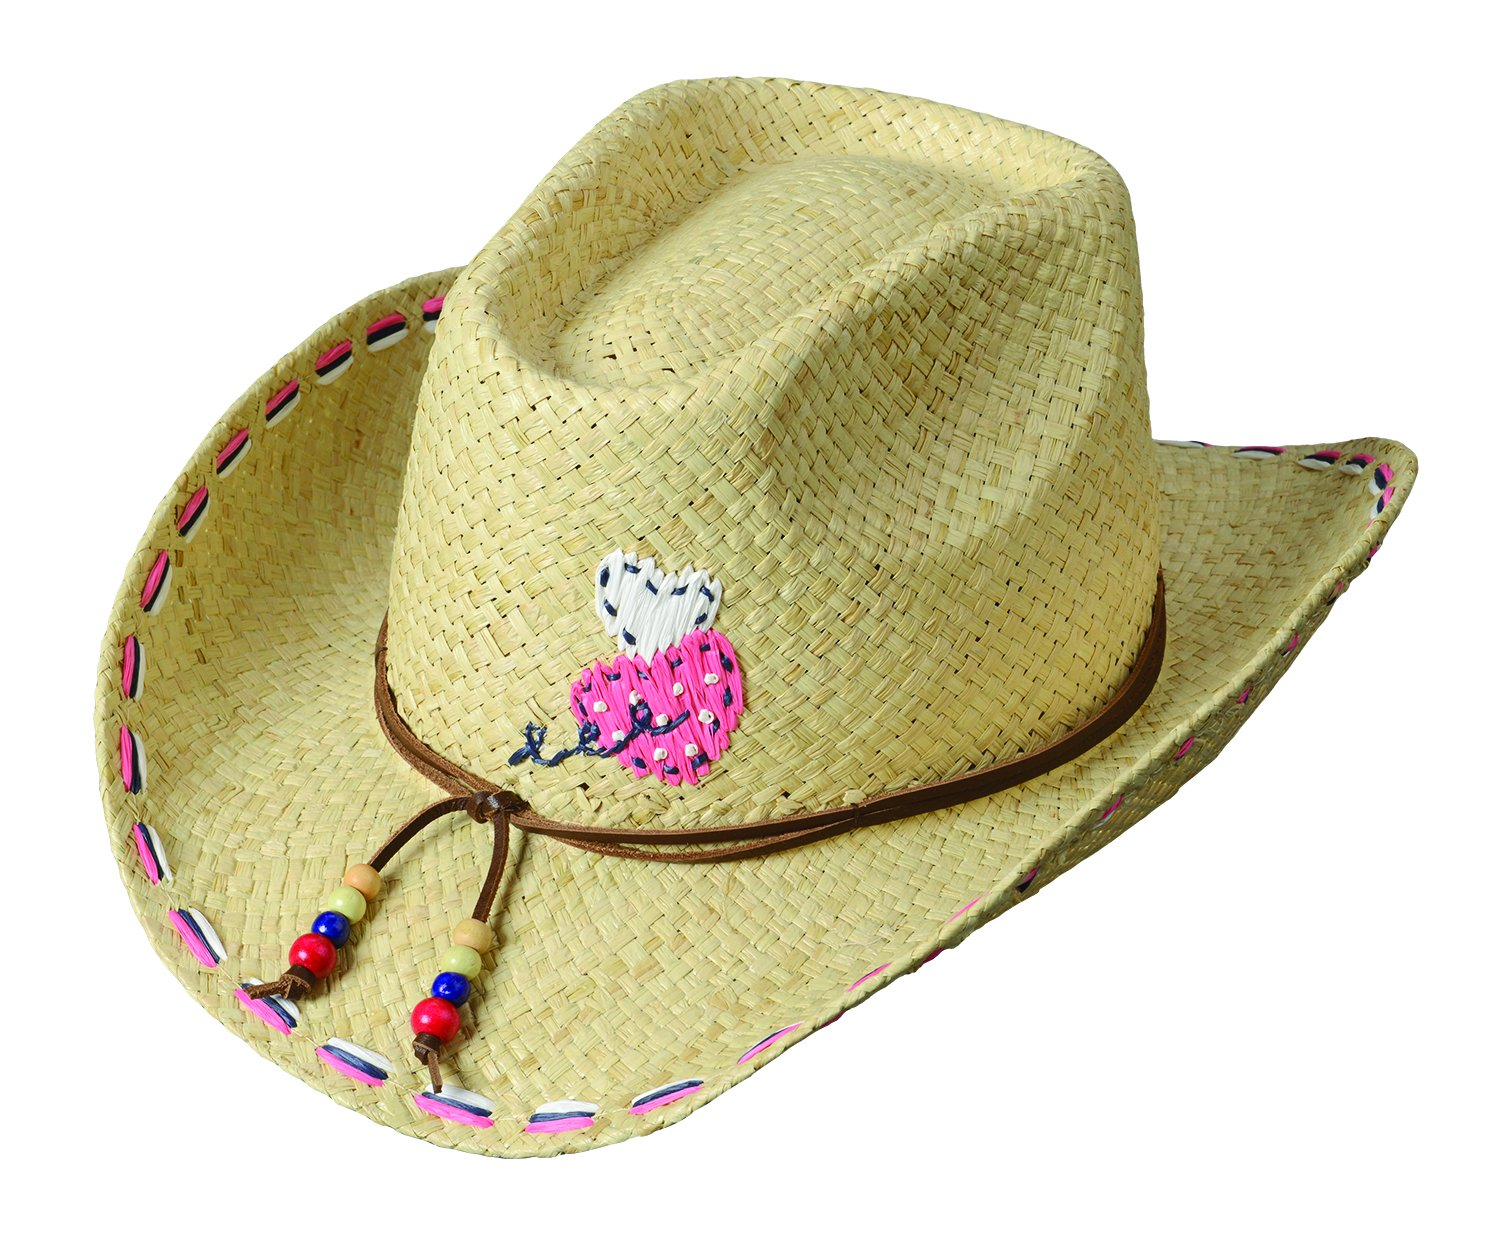 Broner Girls Straw Western Hat with Colorful Stitching on The Brim. 4-7 Years.